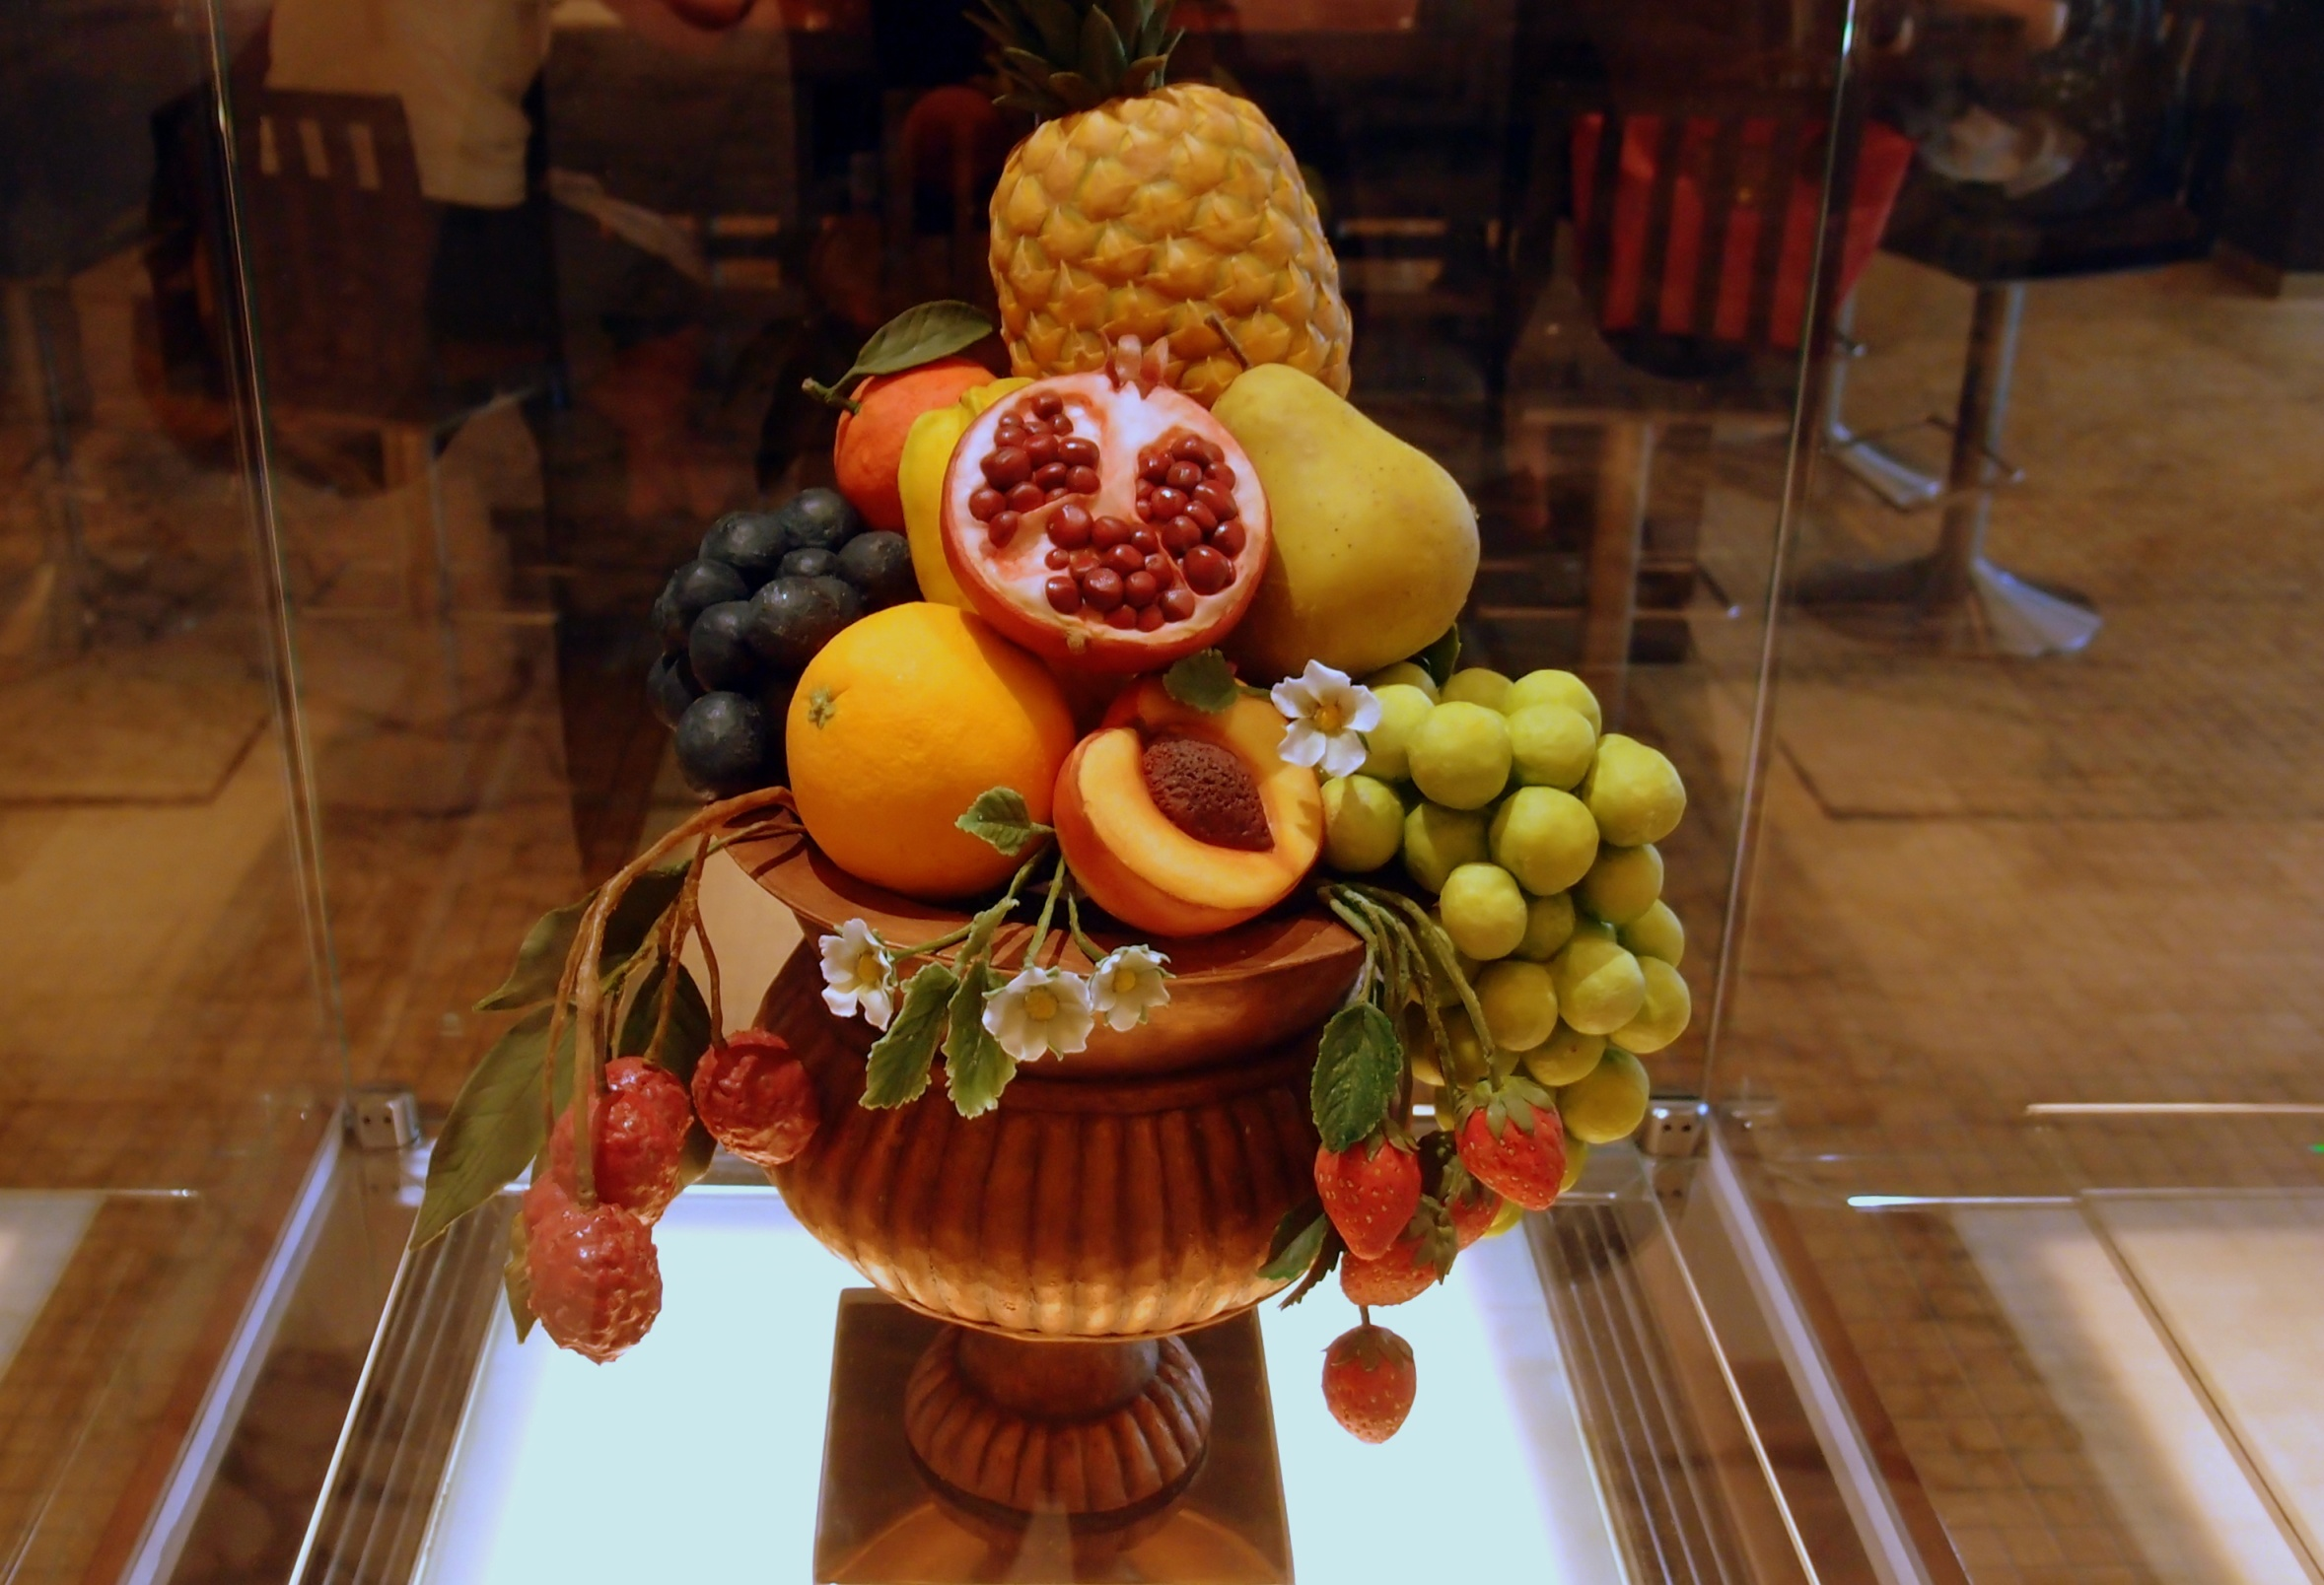 A fruit bowl made of chocolate